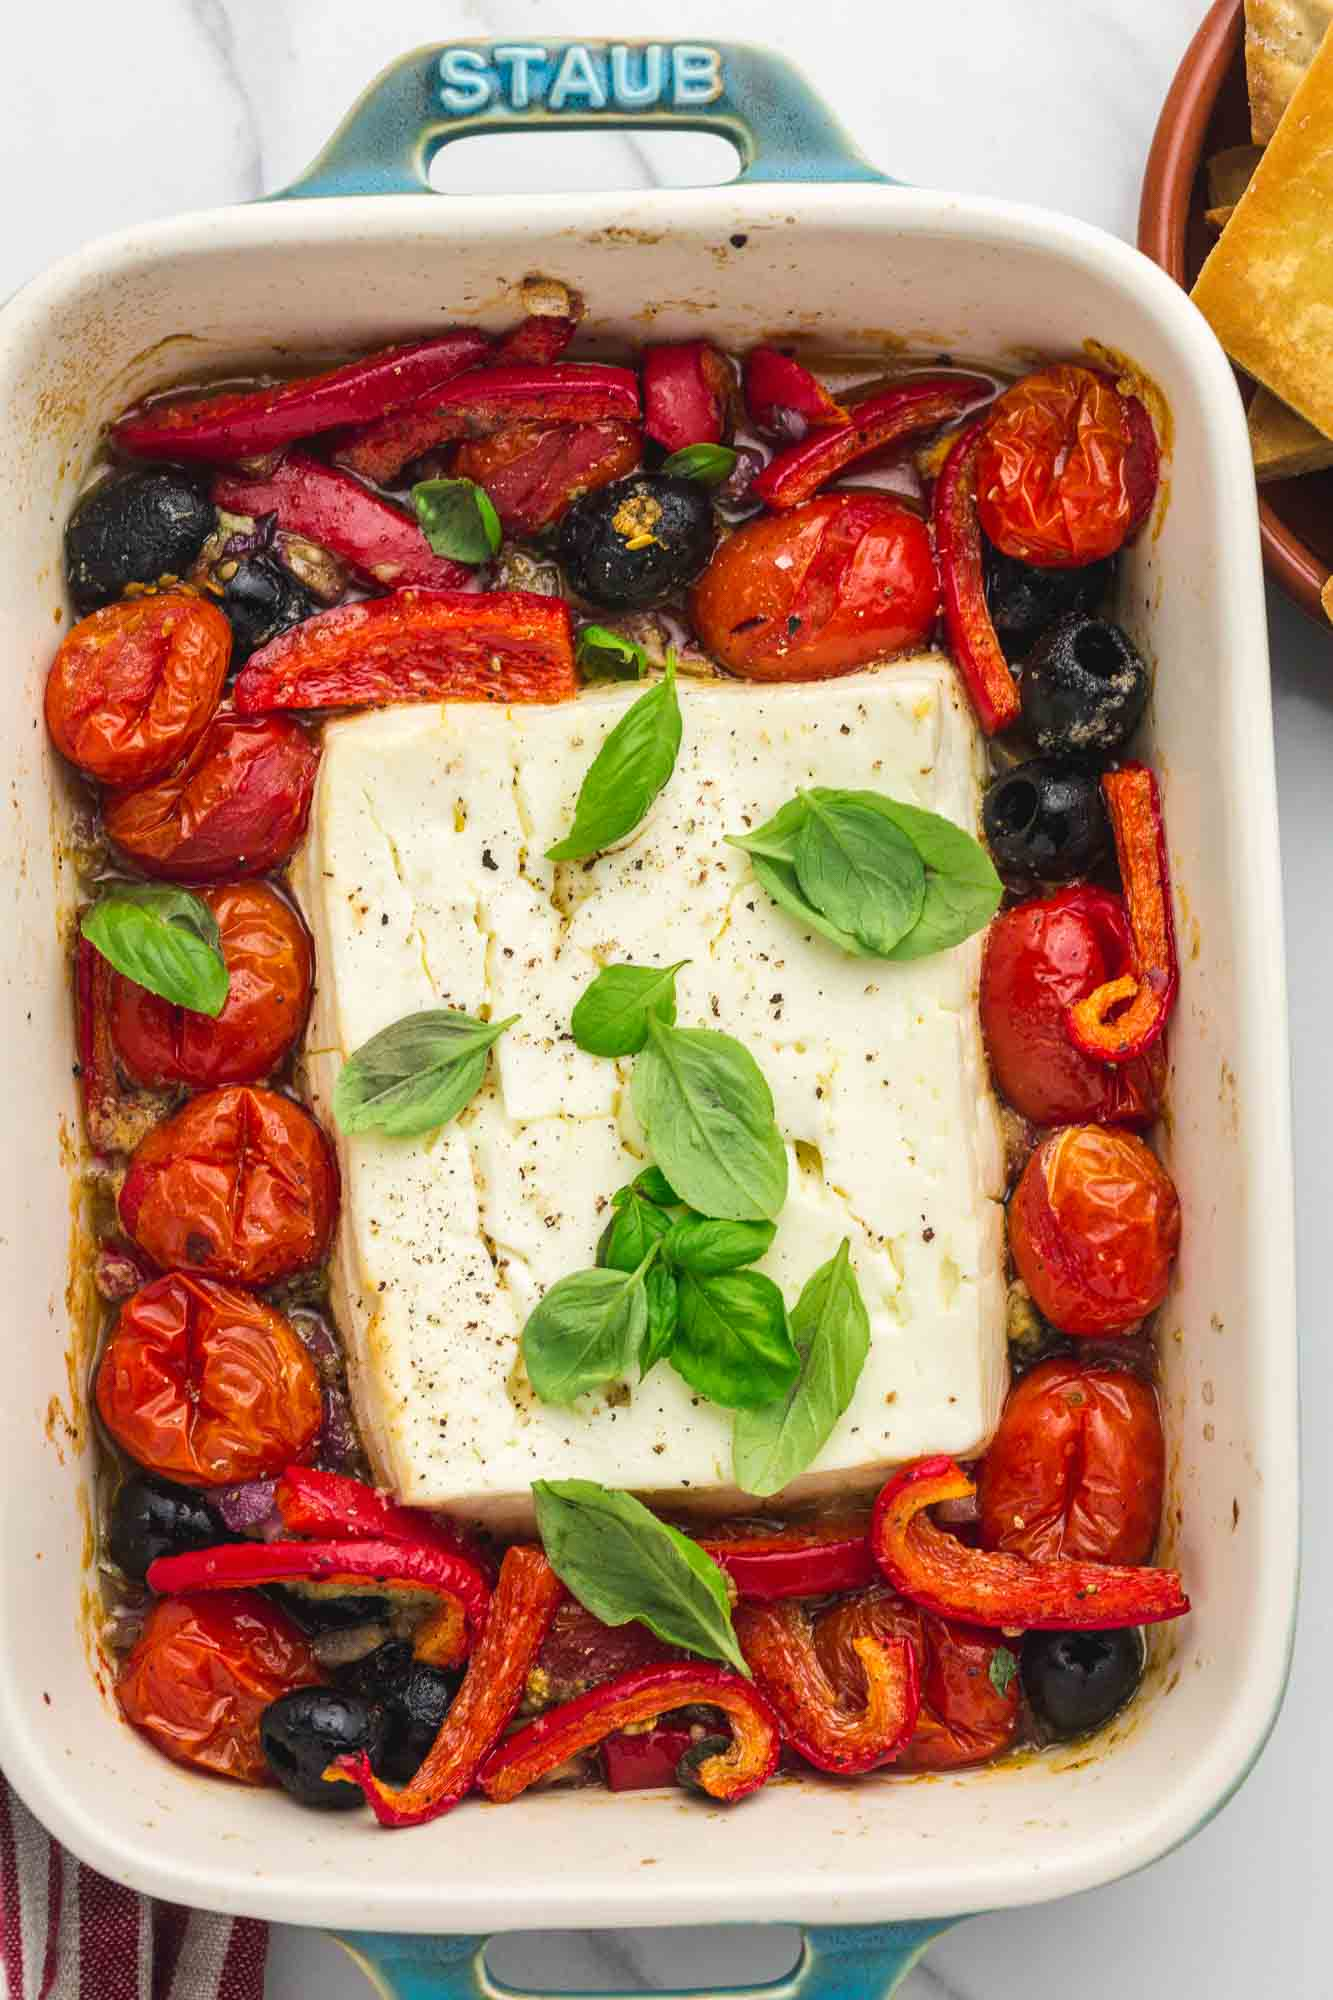 Baked feta dip with roasted vegetables in a baking dish, garnished with fresh basil leaves.